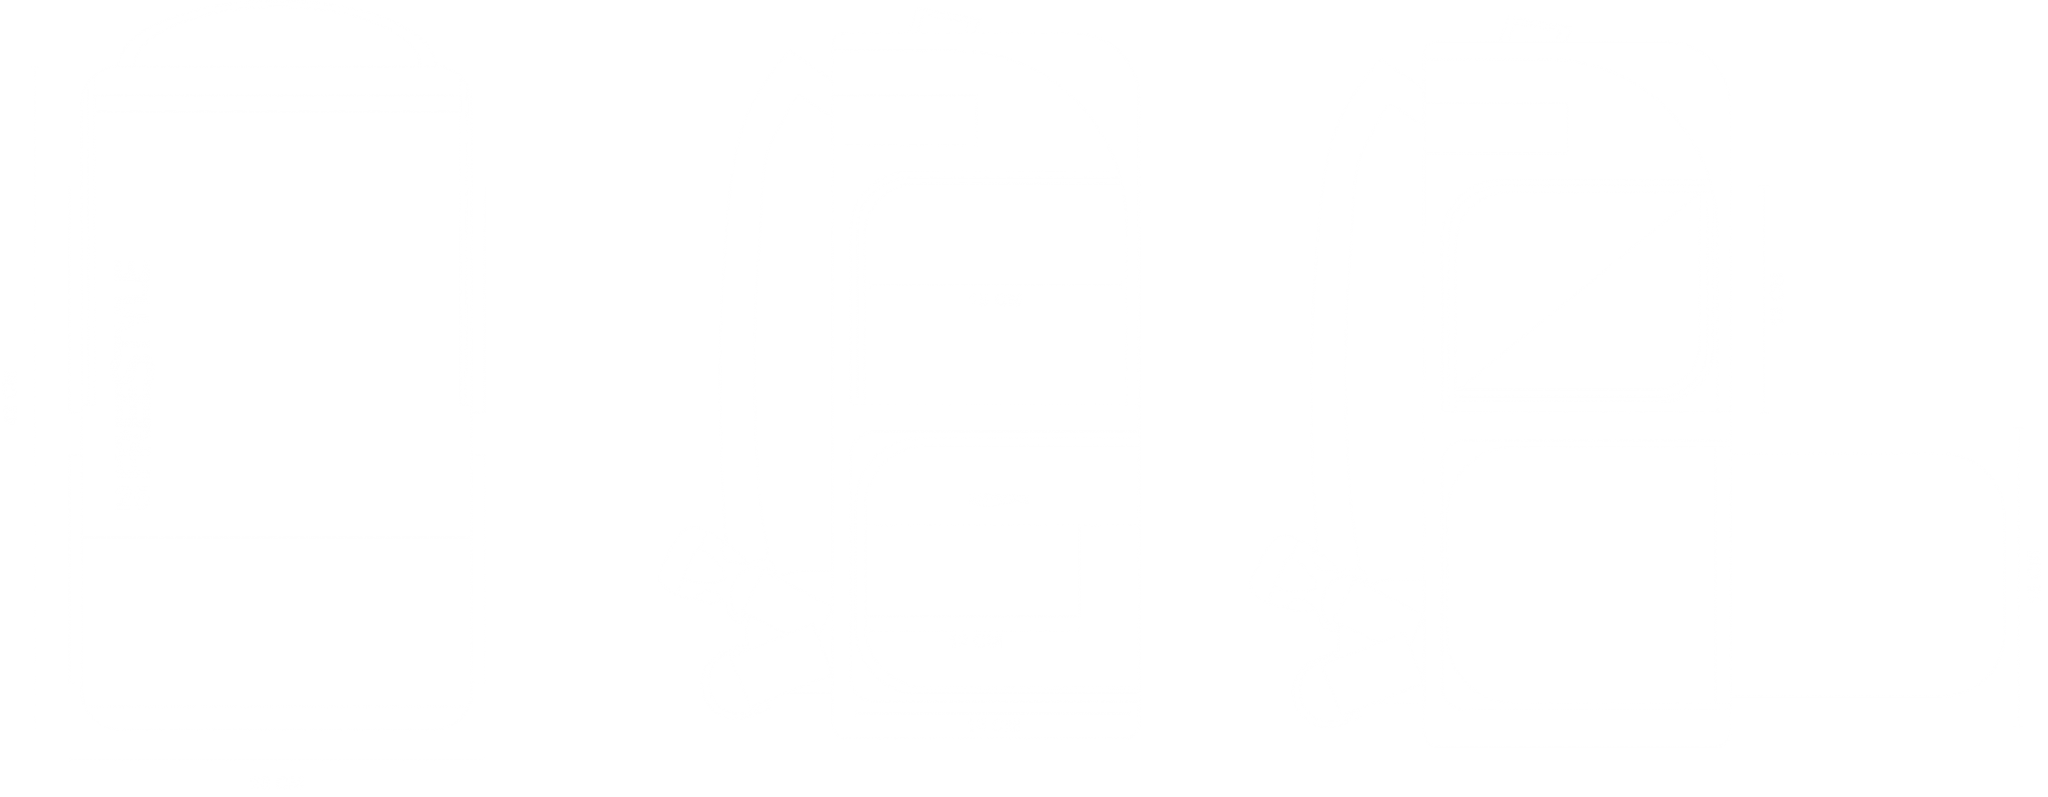 Technical Drawing - Backpack 25